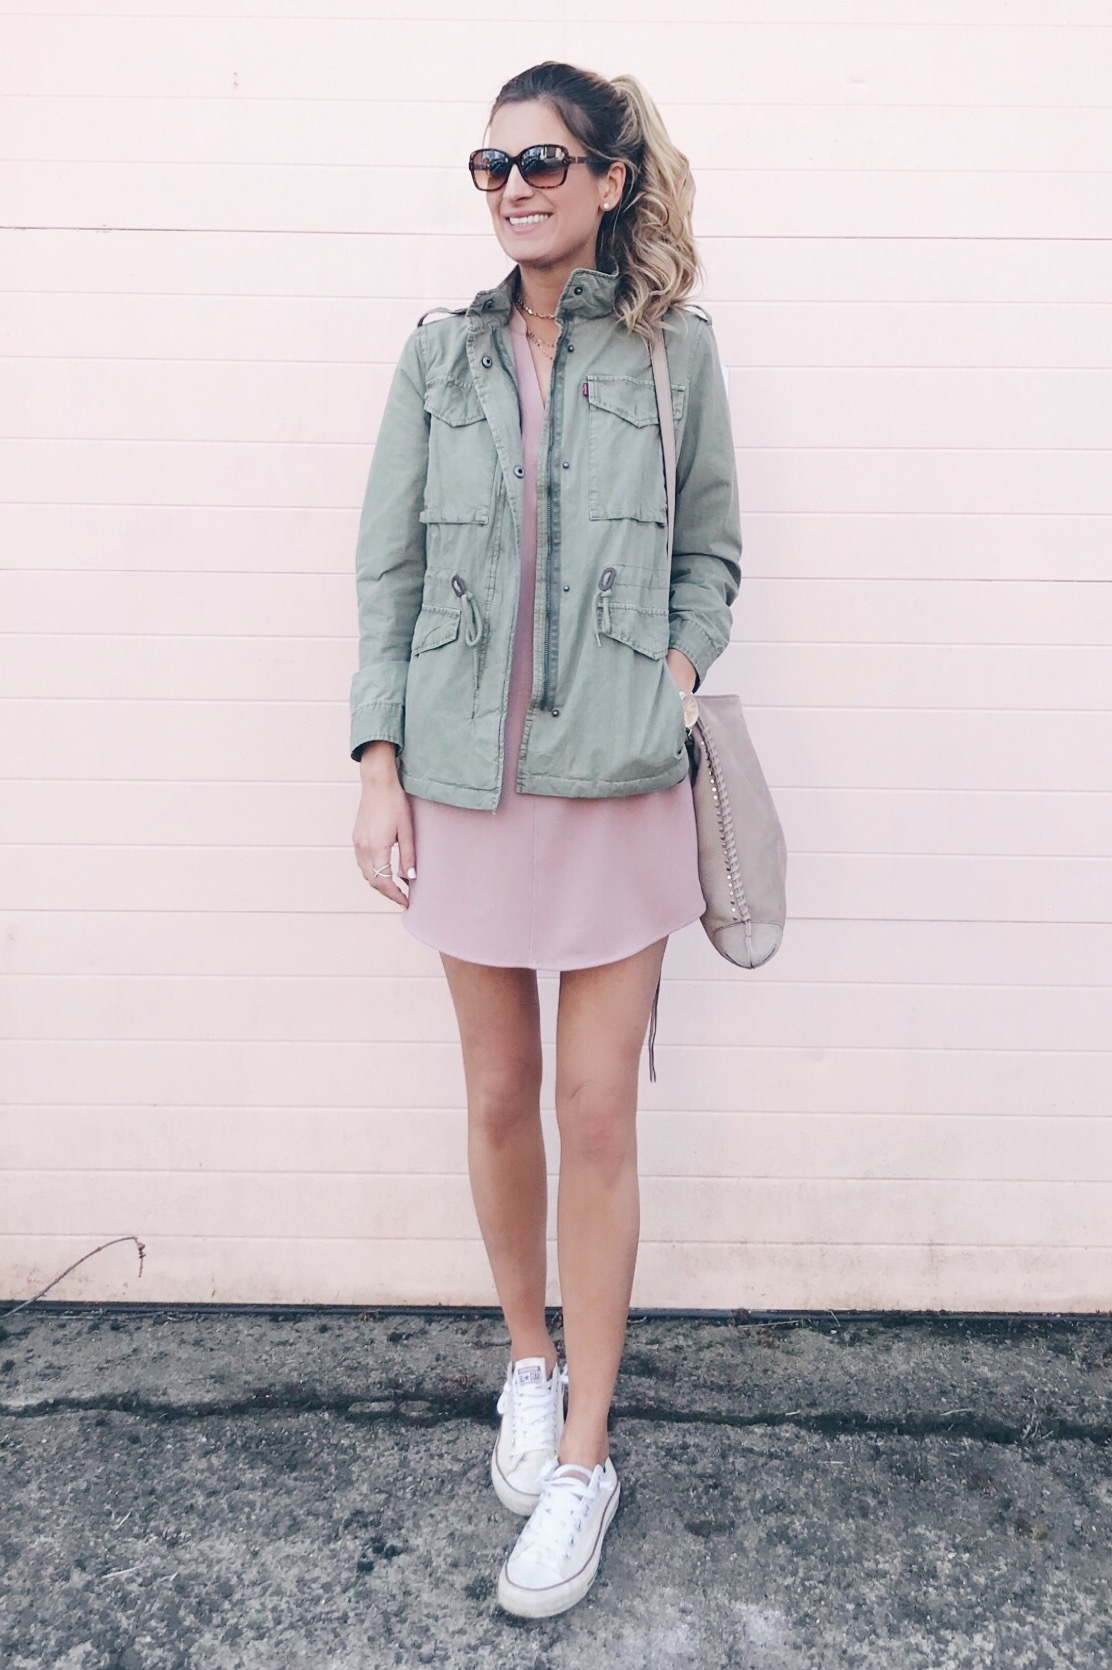 spring capsule wardrobe 2018 - shift dress with sneakers and utility jacket on pinteresting plans blog